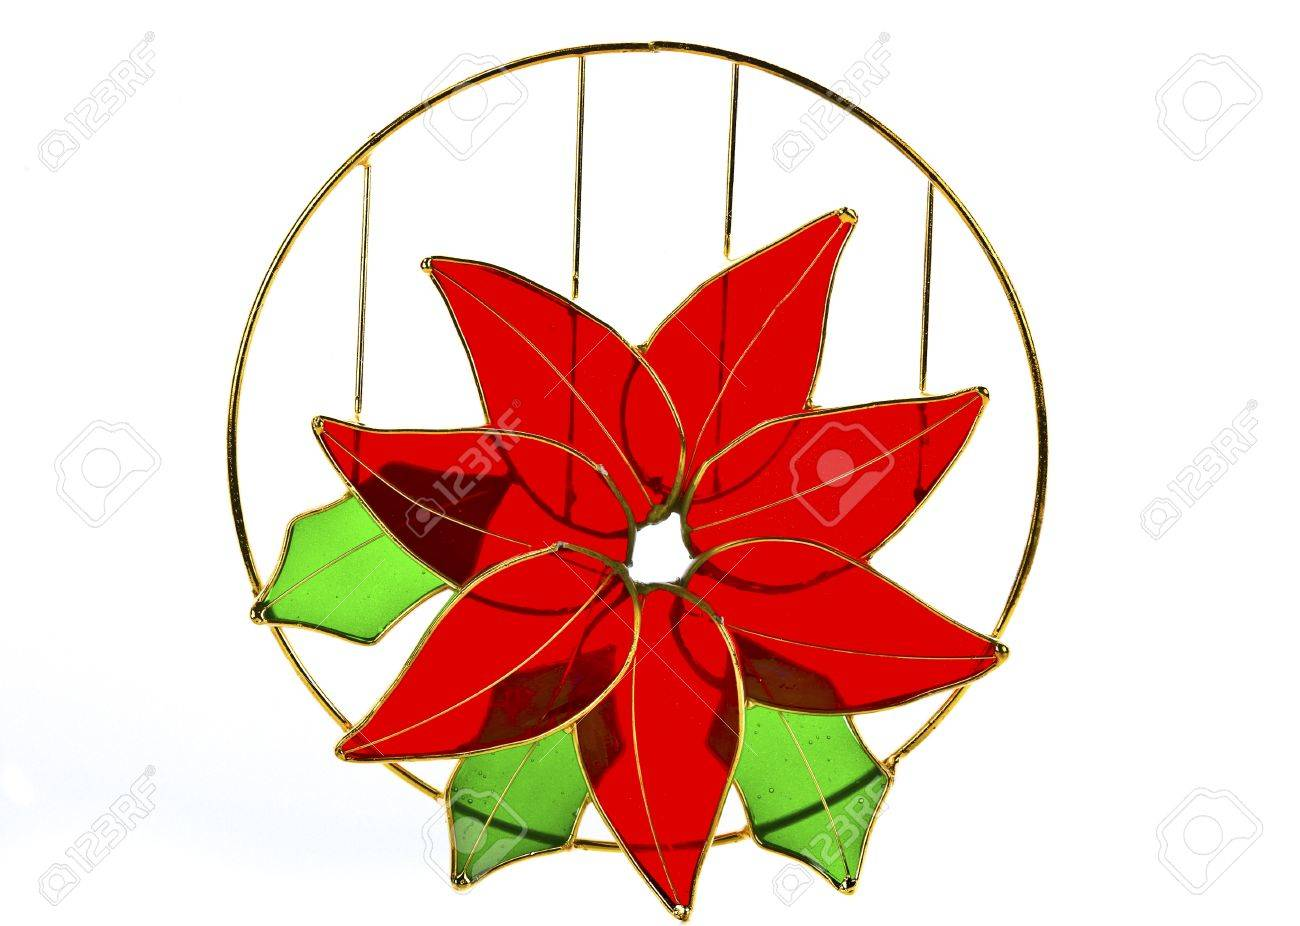 Poinsettia Flower Cliparts Free Download Best Poinsettia Flower